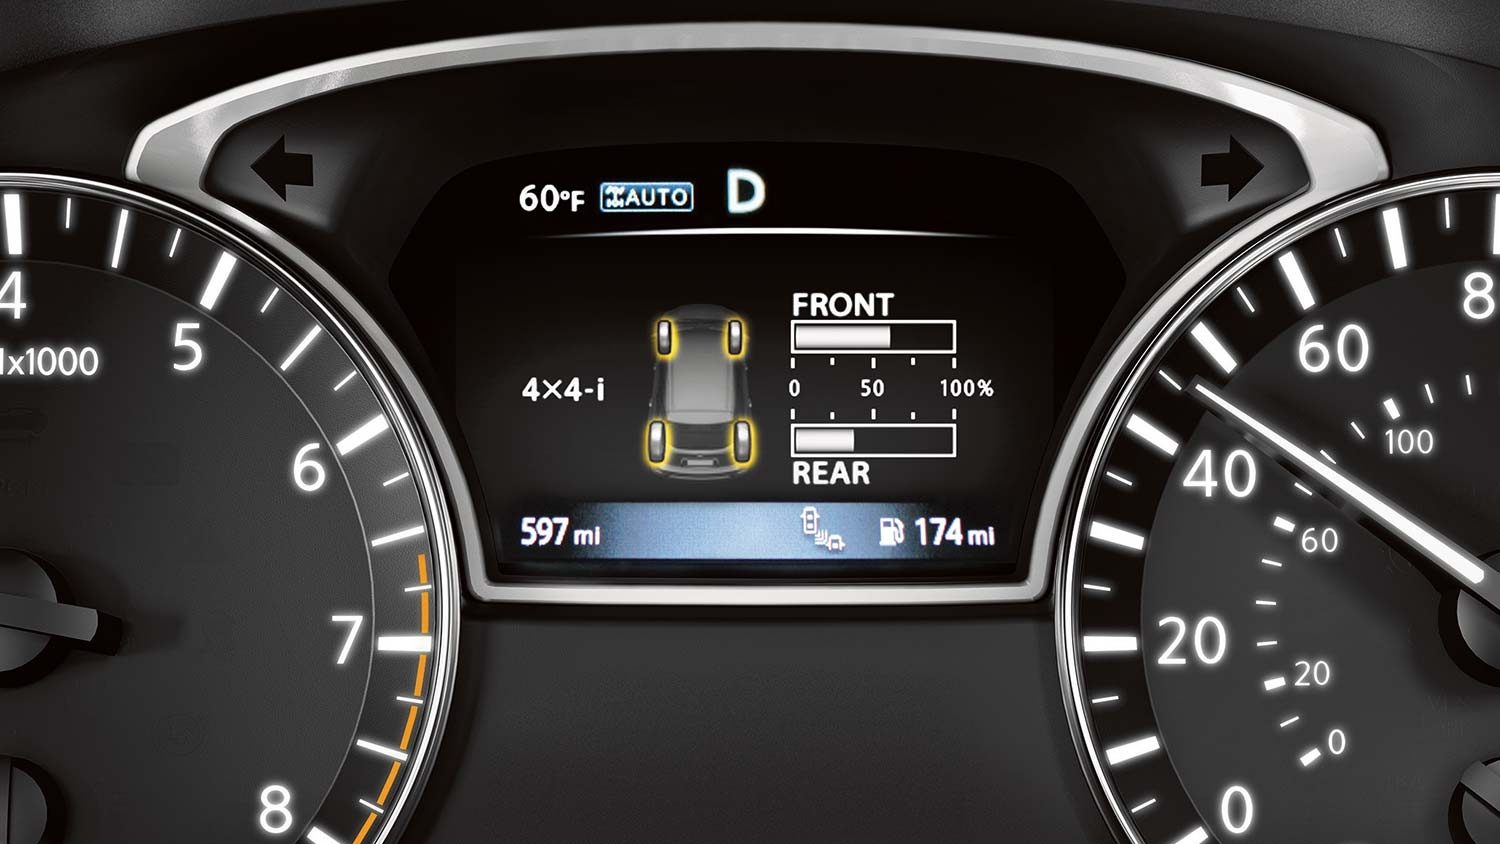 Nissan Pathfinder Advanced Drive-Assist Display